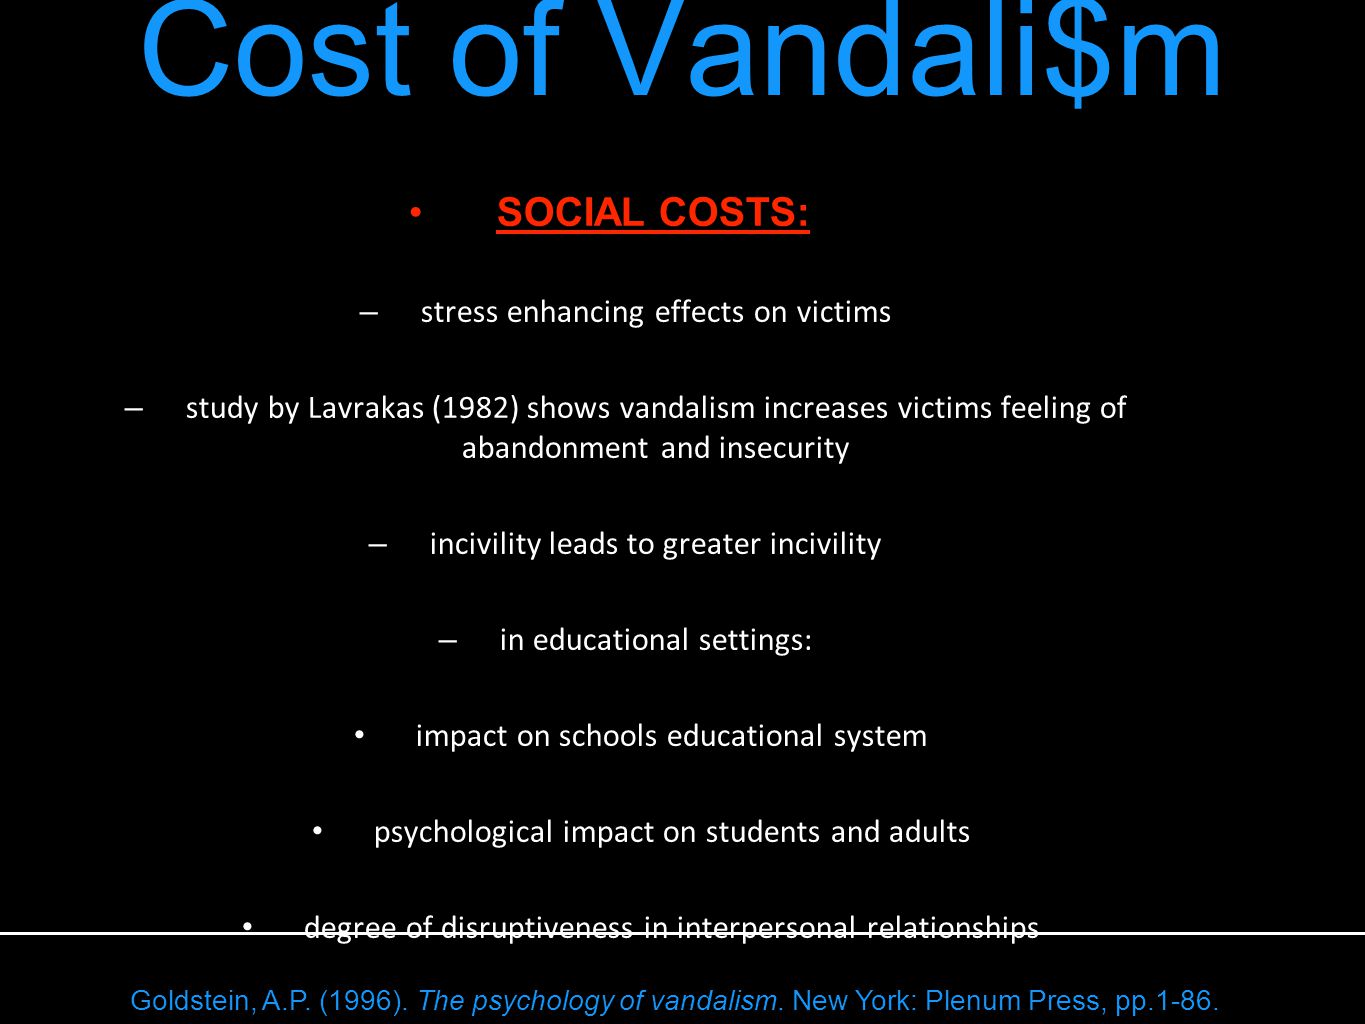 SOCIAL COSTS: – stress enhancing effects on victims – study by Lavrakas (1982) shows vandalism increases victims feeling of abandonment and insecurity – incivility leads to greater incivility – in educational settings: impact on schools educational system psychological impact on students and adults degree of disruptiveness in interpersonal relationships Cost of Vandali$m Goldstein, A.P.